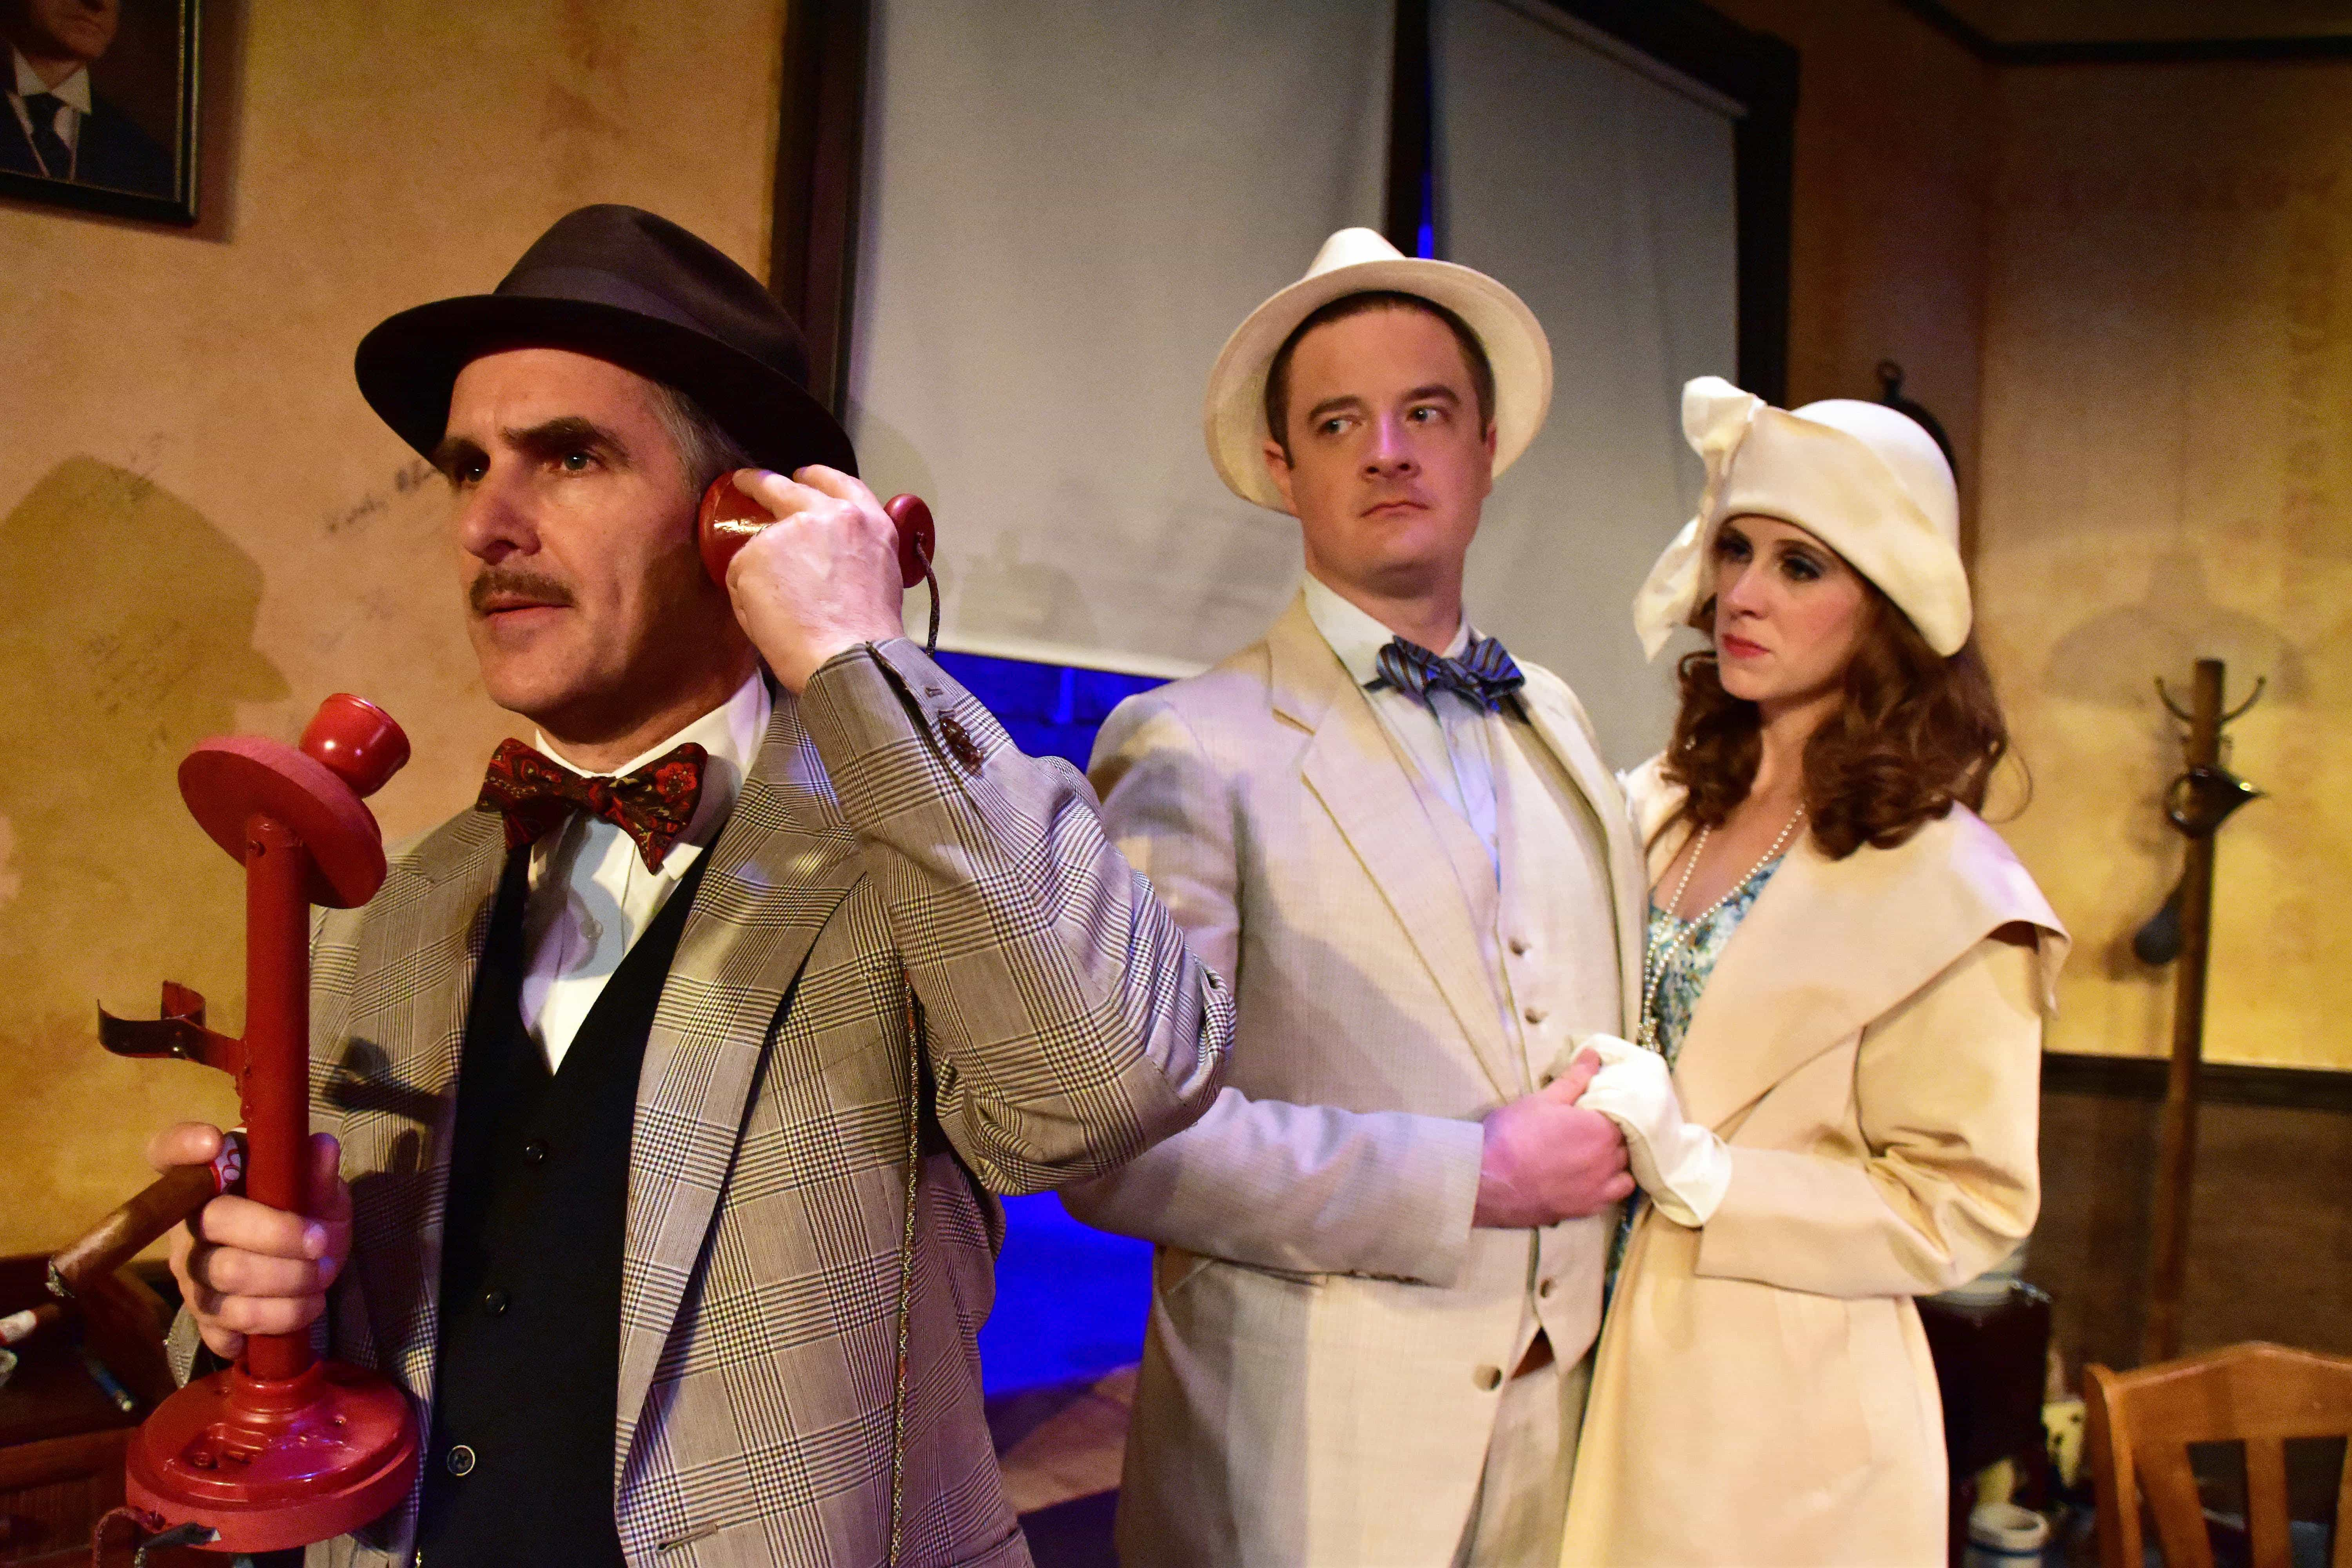 L to R: David Whitehead as Walter Burns, Jaclyn Robertson as Peggy Grant and Chuck O'Toole as Hildy Johnson in the Providence Players production of The Front Page at the James Lee Community Center Theater. Photo by Chip Gertzog.